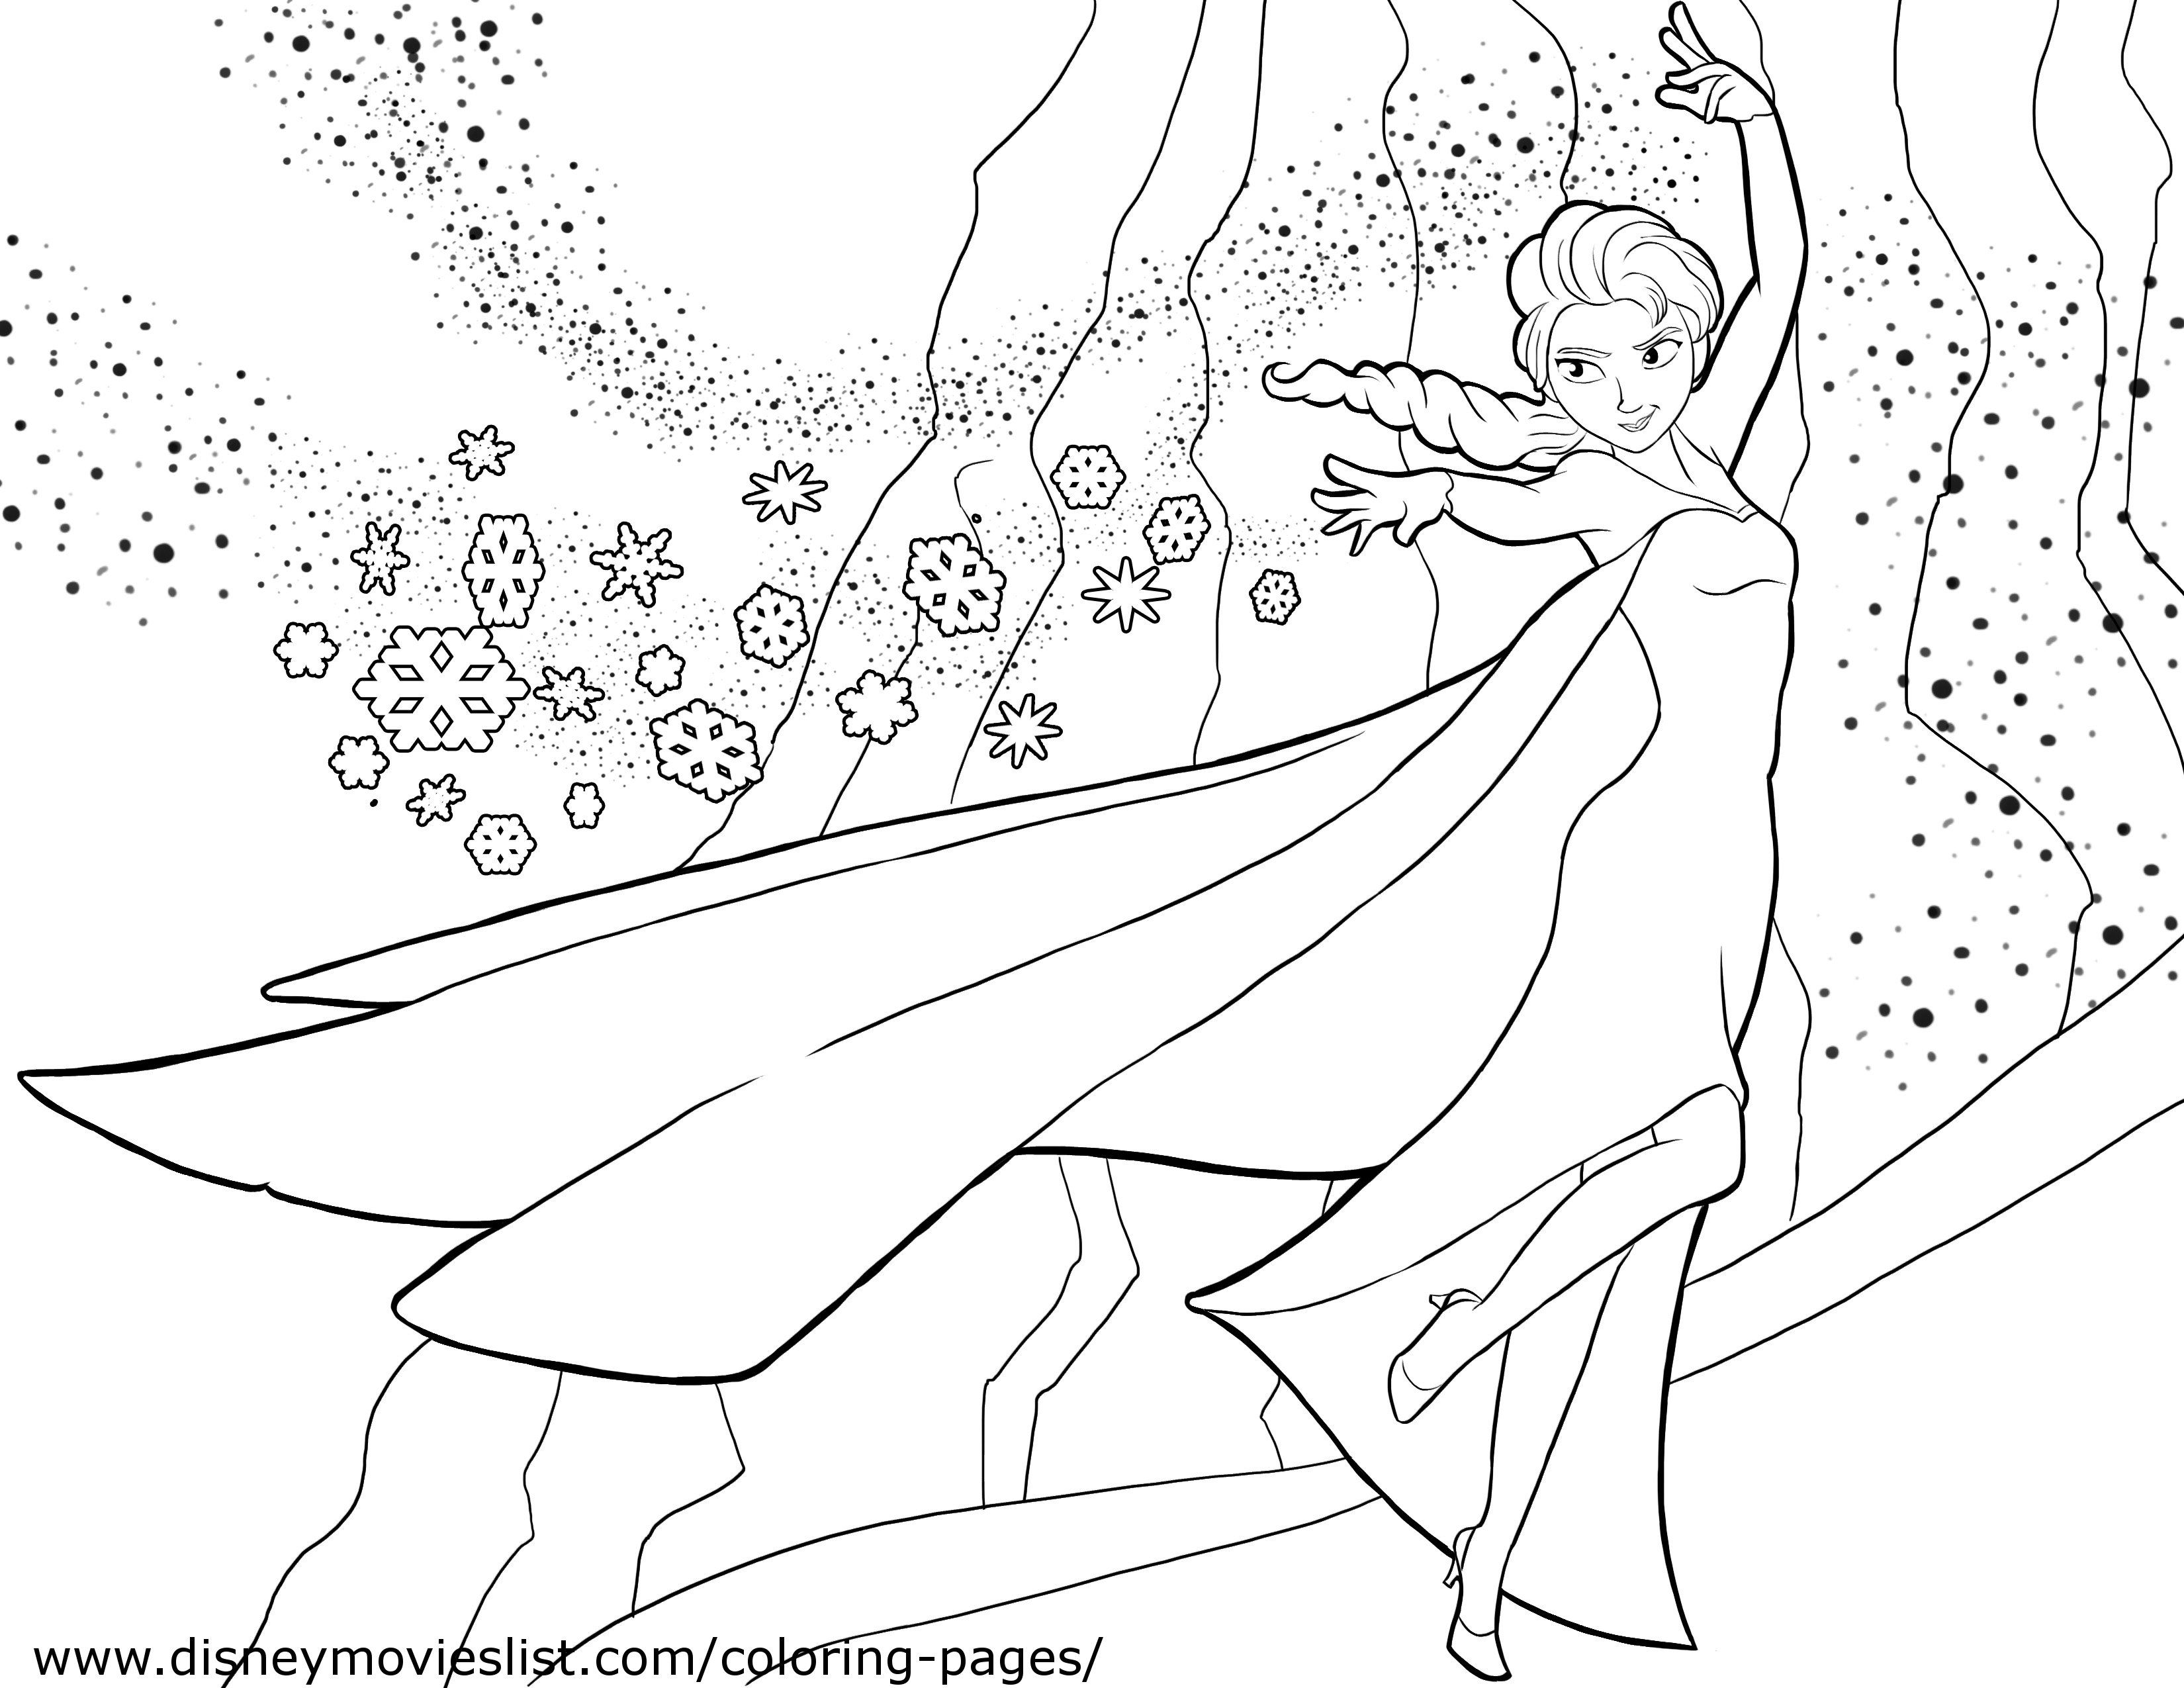 Disney's Frozen Coloring Pages, Free Disney Printable